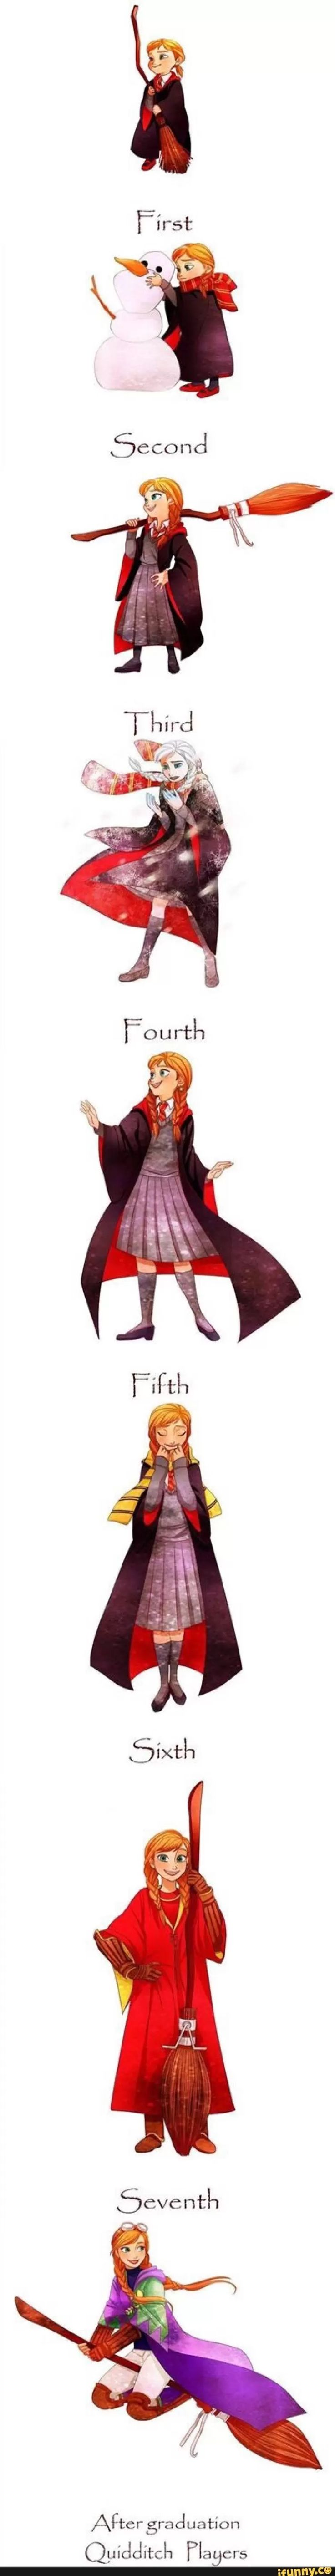 Anna at Hogwarts!!!! --->>> I feel like Anna would be a Hufflepuff.. she sacrificed herself for the one she loved and was really hopeful, but ig could be a Gryffindor